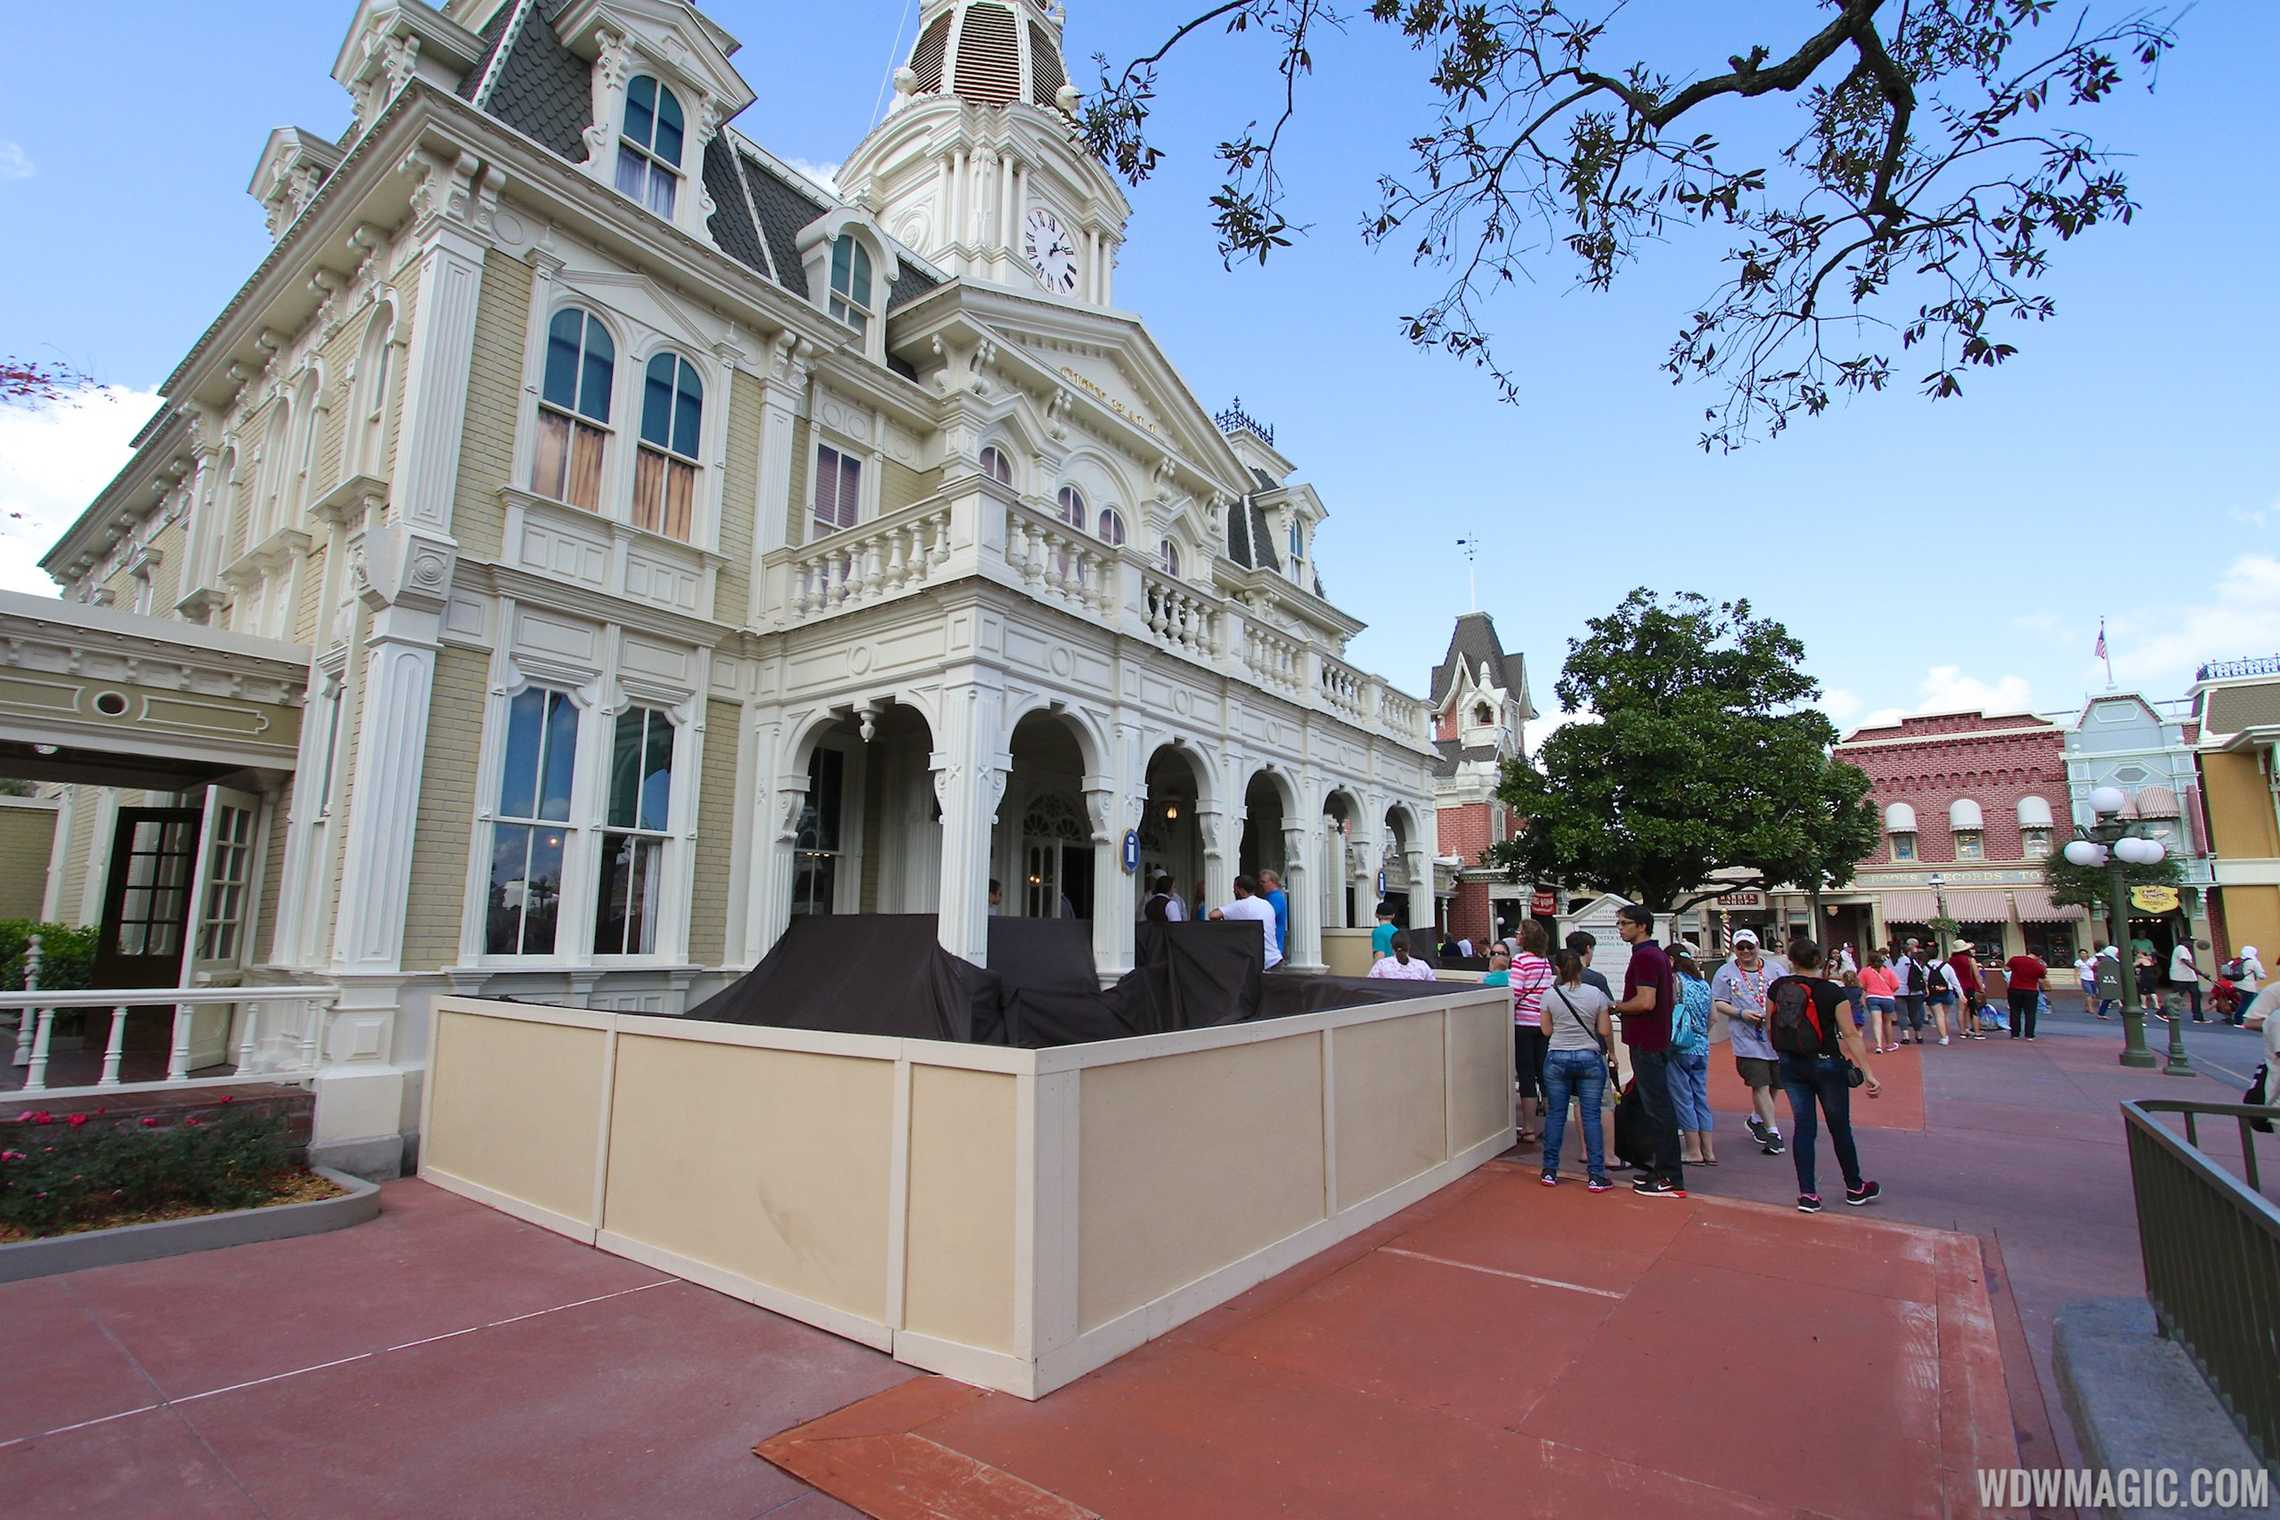 Concrete replacement along Main Street U.S.A.